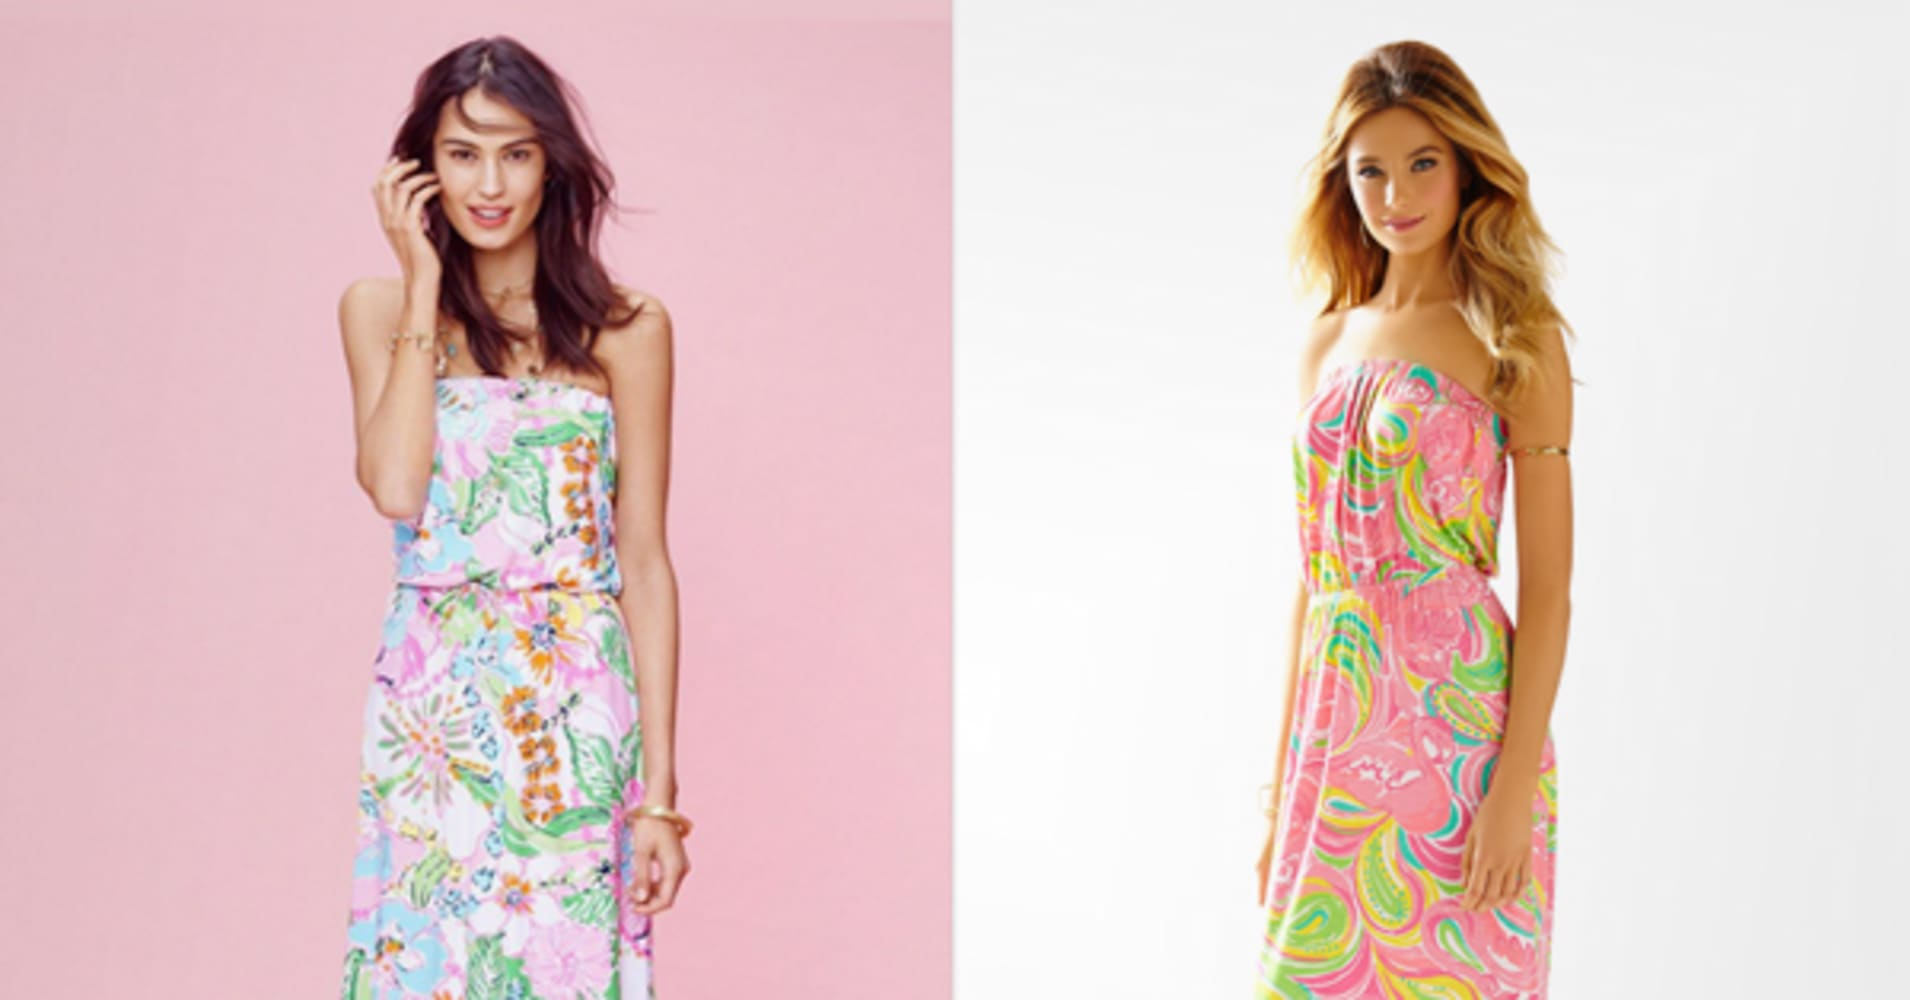 Lilly pulitzer for target at a premium on ebay gumiabroncs Gallery